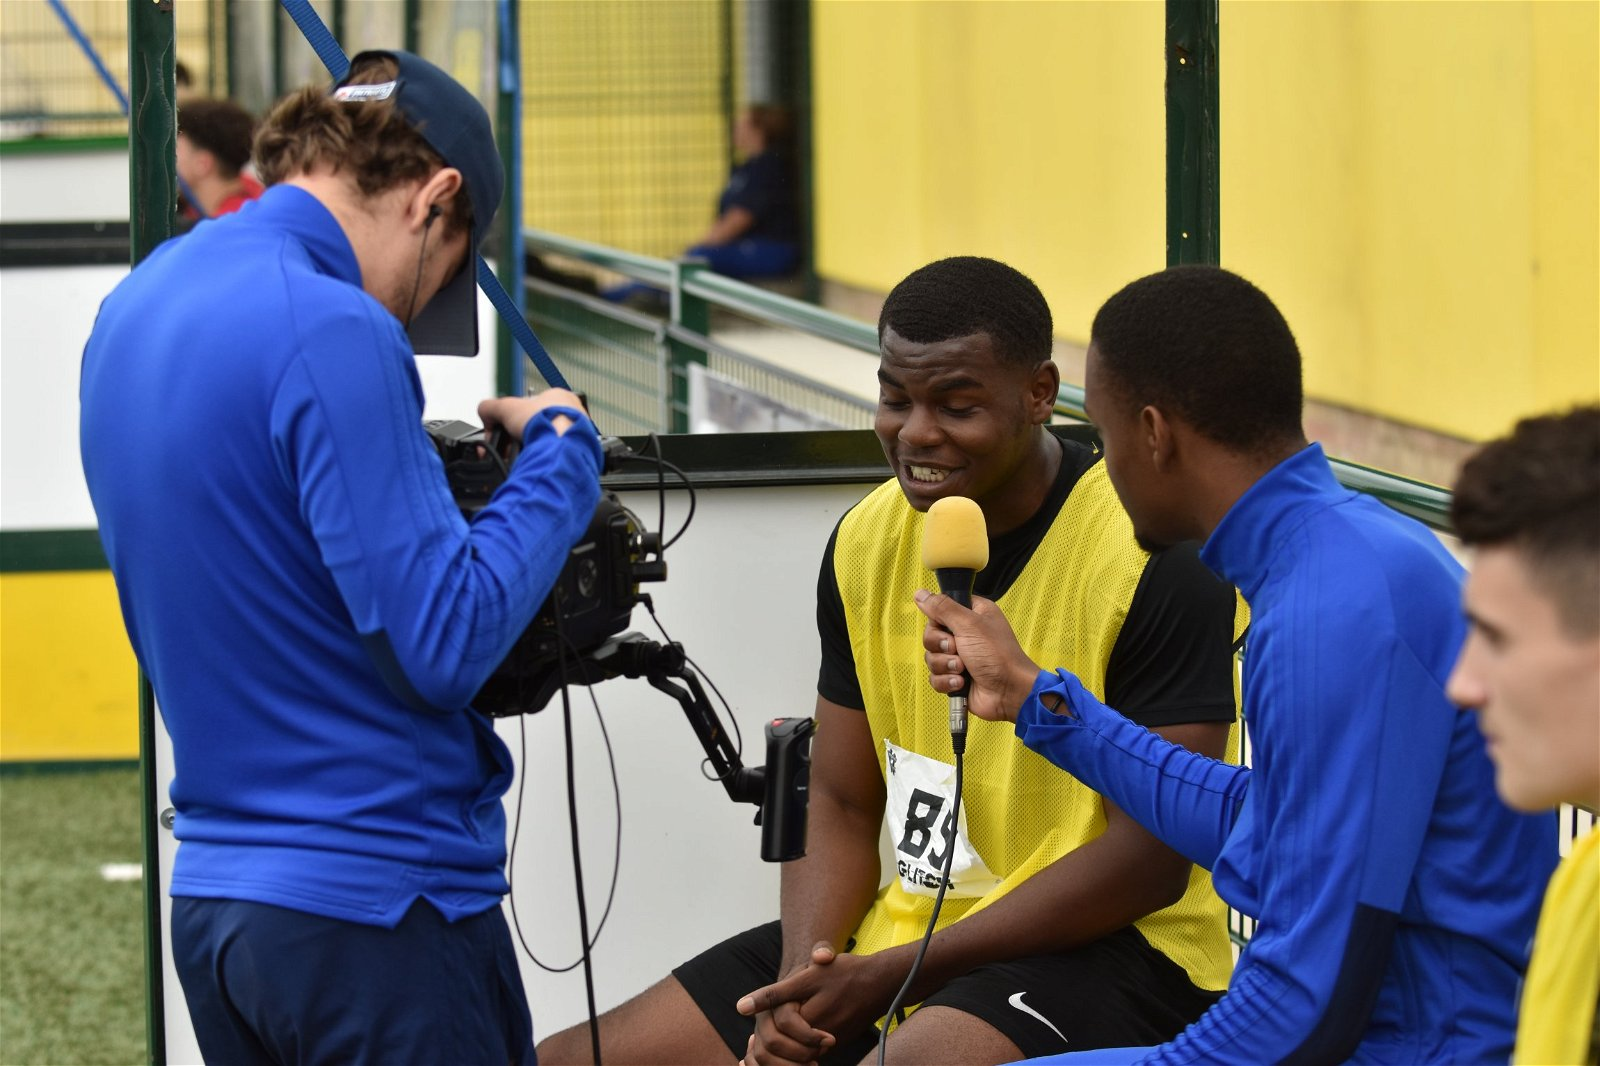 3 HASHTAG ACADEMY 7 trialist is interviewed - [Images] - Take a look at the best photos from the third day of the Hashtag Academy!